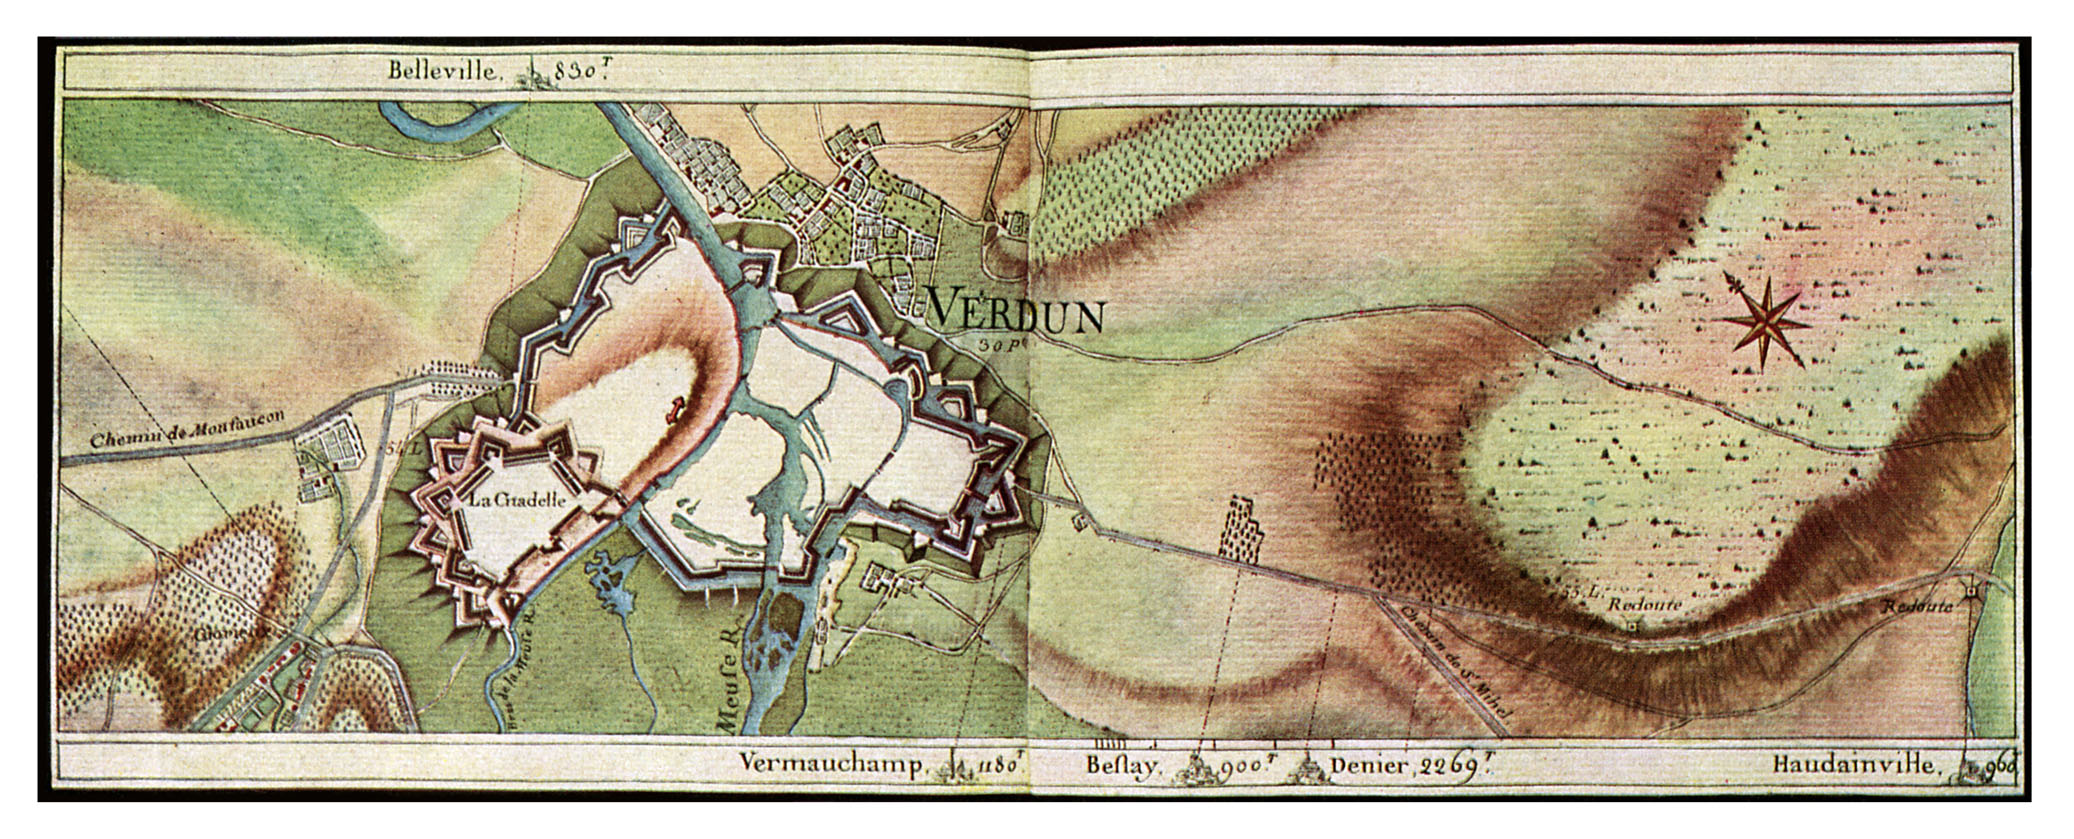 Roadmaps, 18th century France: Verdun and its surroundings in 1755. From collection of maps drawn for King Louis XV by designers from L'Ecole des Ponts-et-Chaussées. (Photo by Culture Club/Getty Images) *** Local Caption ***